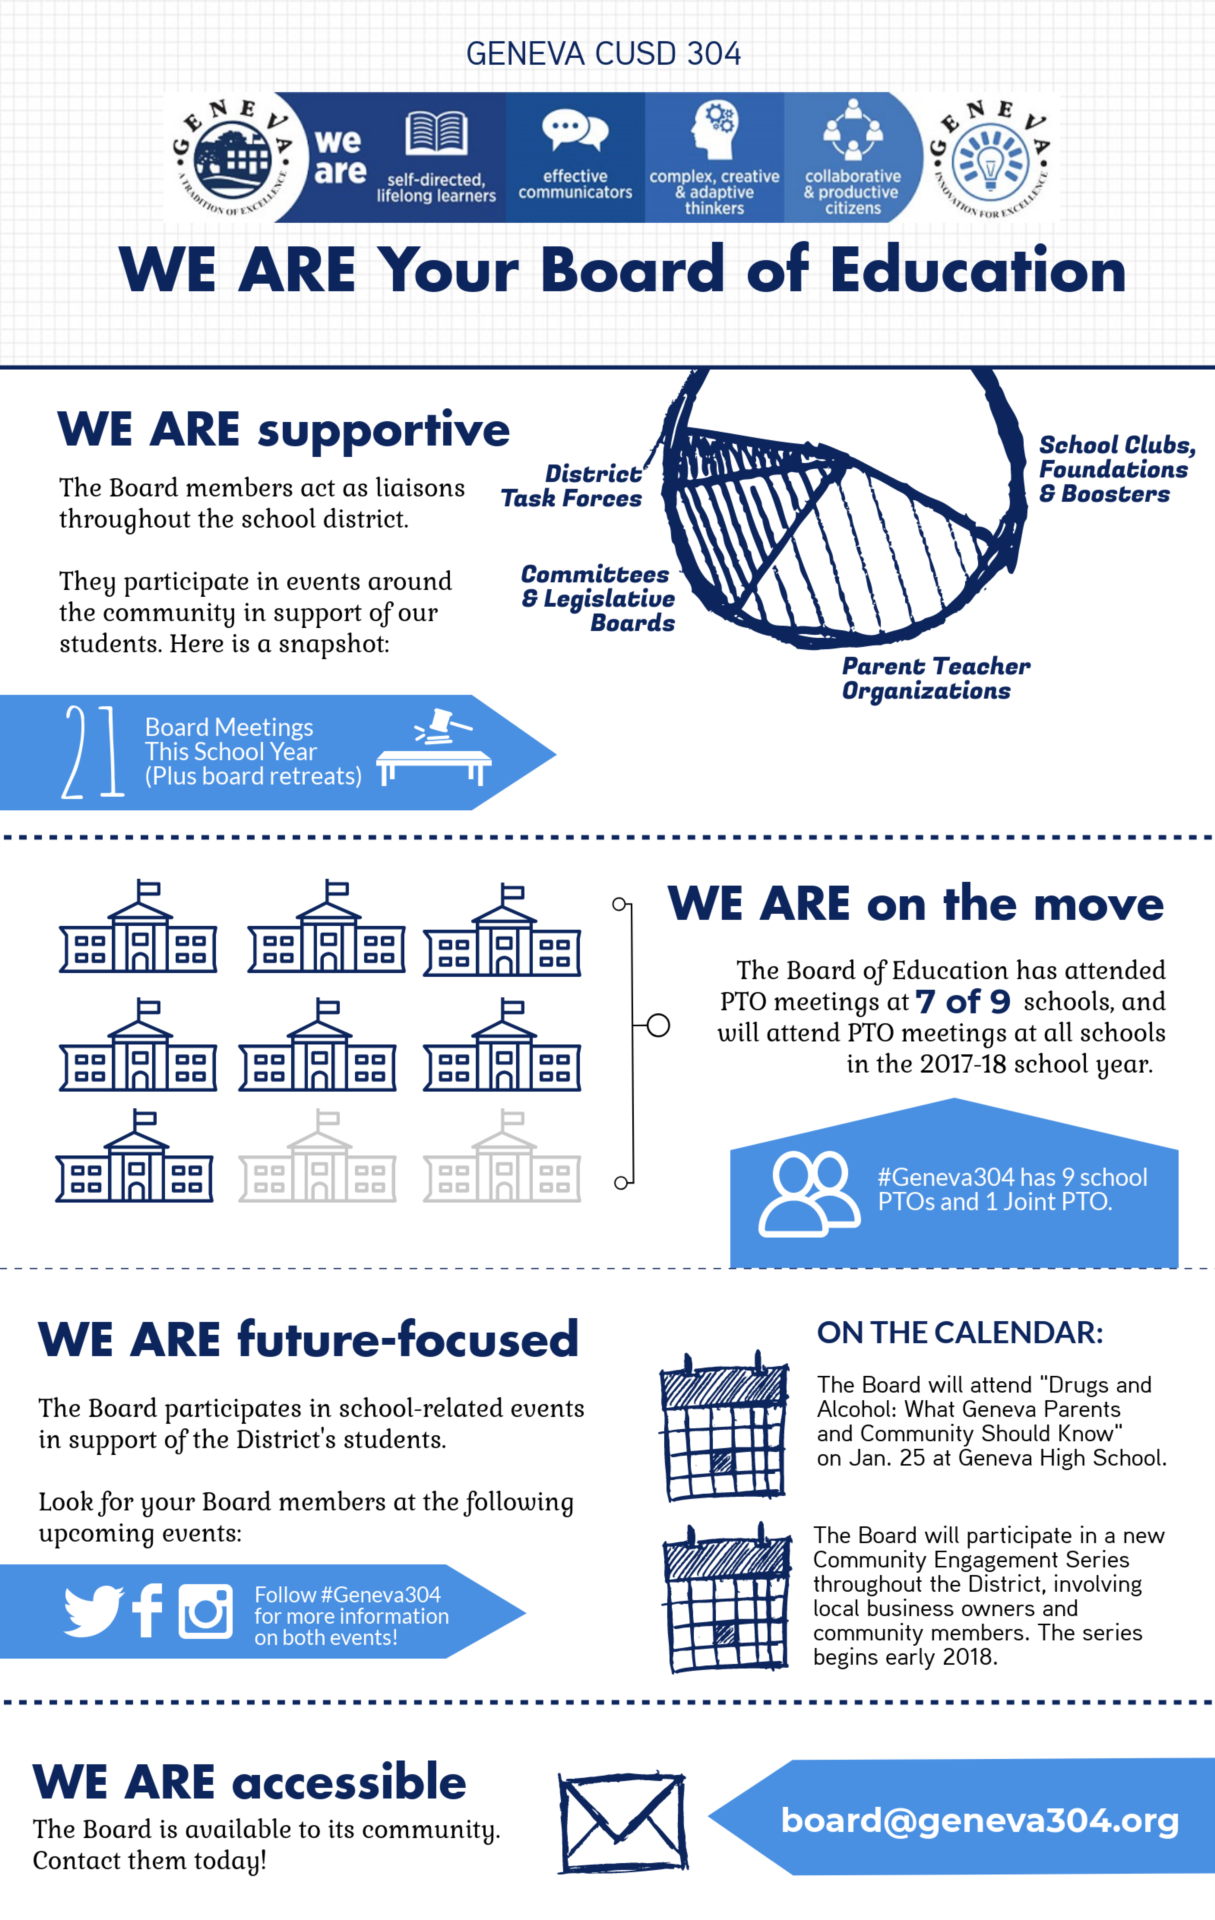 We Are Your Board of Education Infographic Series: No. 1